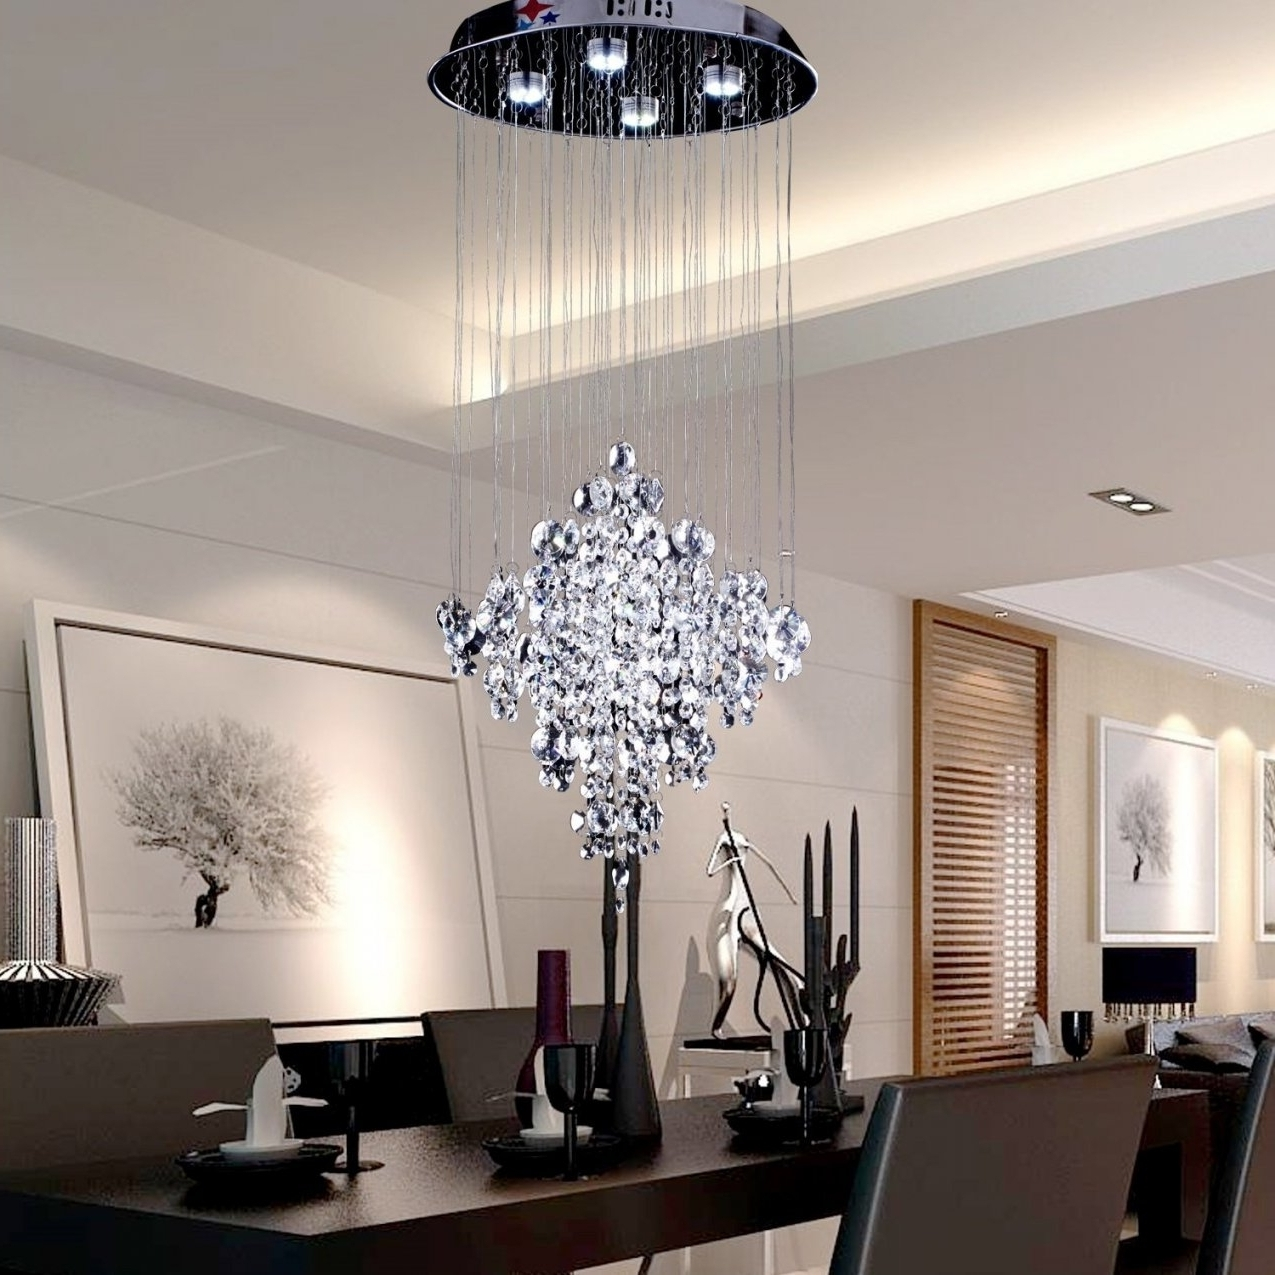 Modern Chandelier Intended For 2018 Modern Chandeliers For High Ceilings (View 8 of 20)